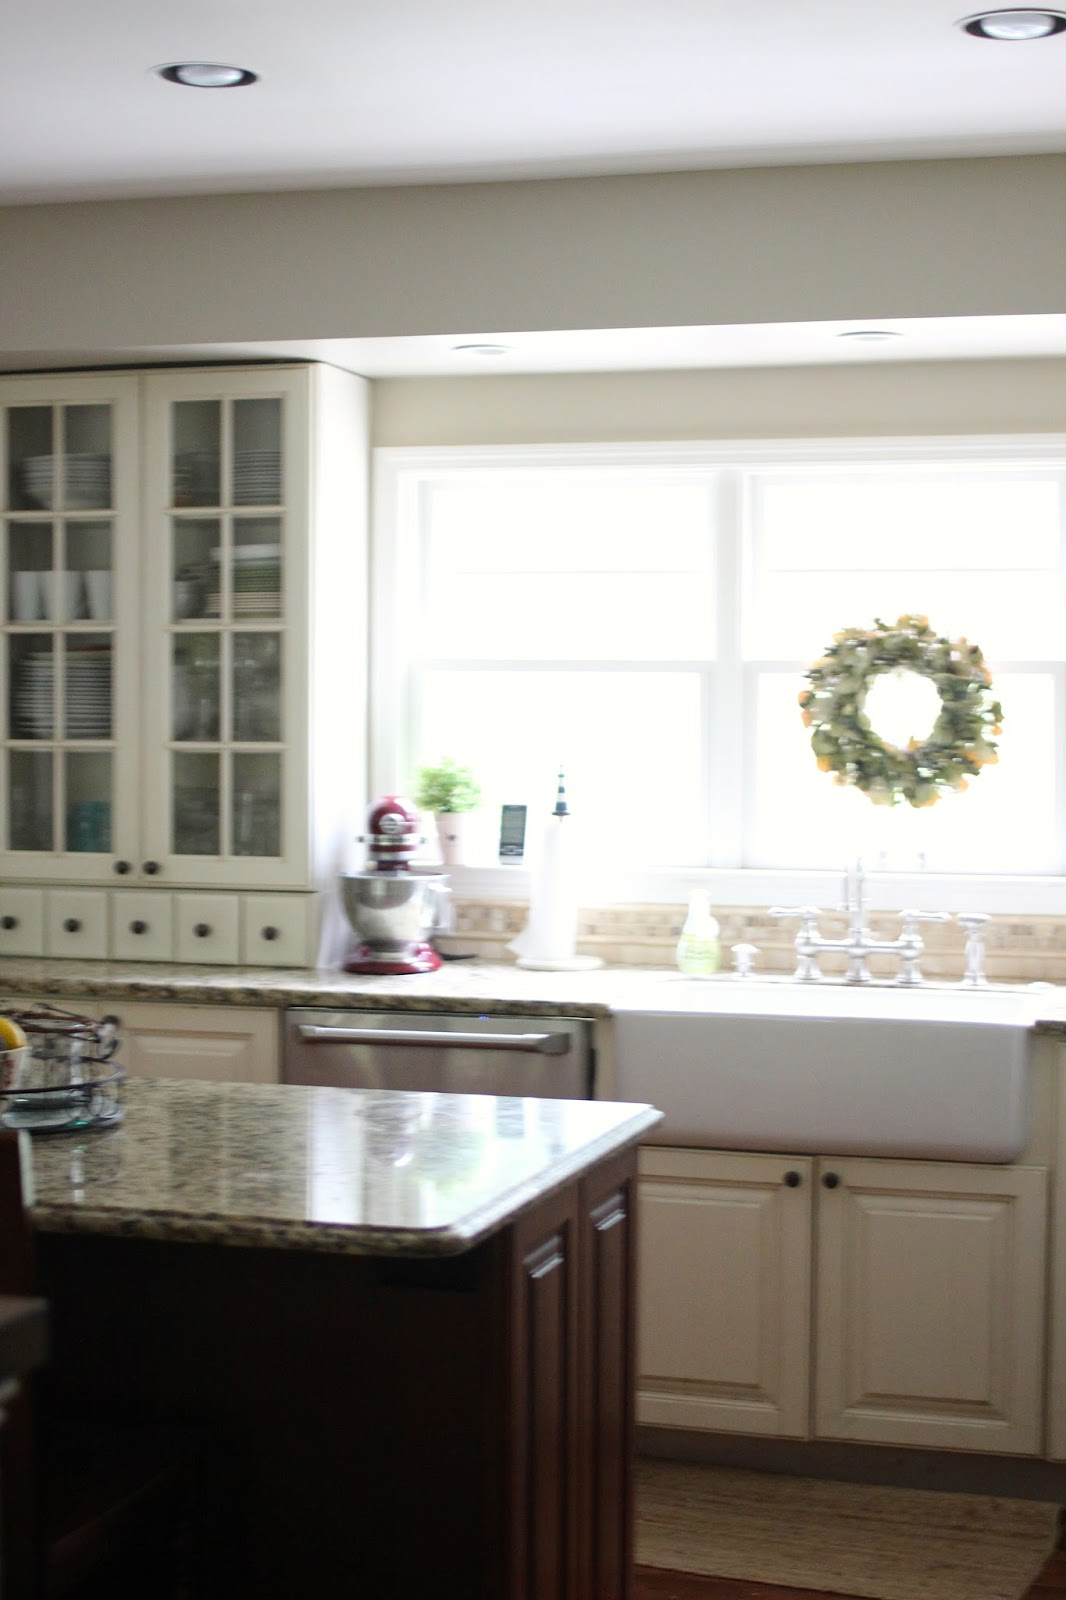 Shaw Farm Sink With Wreath Above And Behr Castle Path Paint Www Goldenboysandme